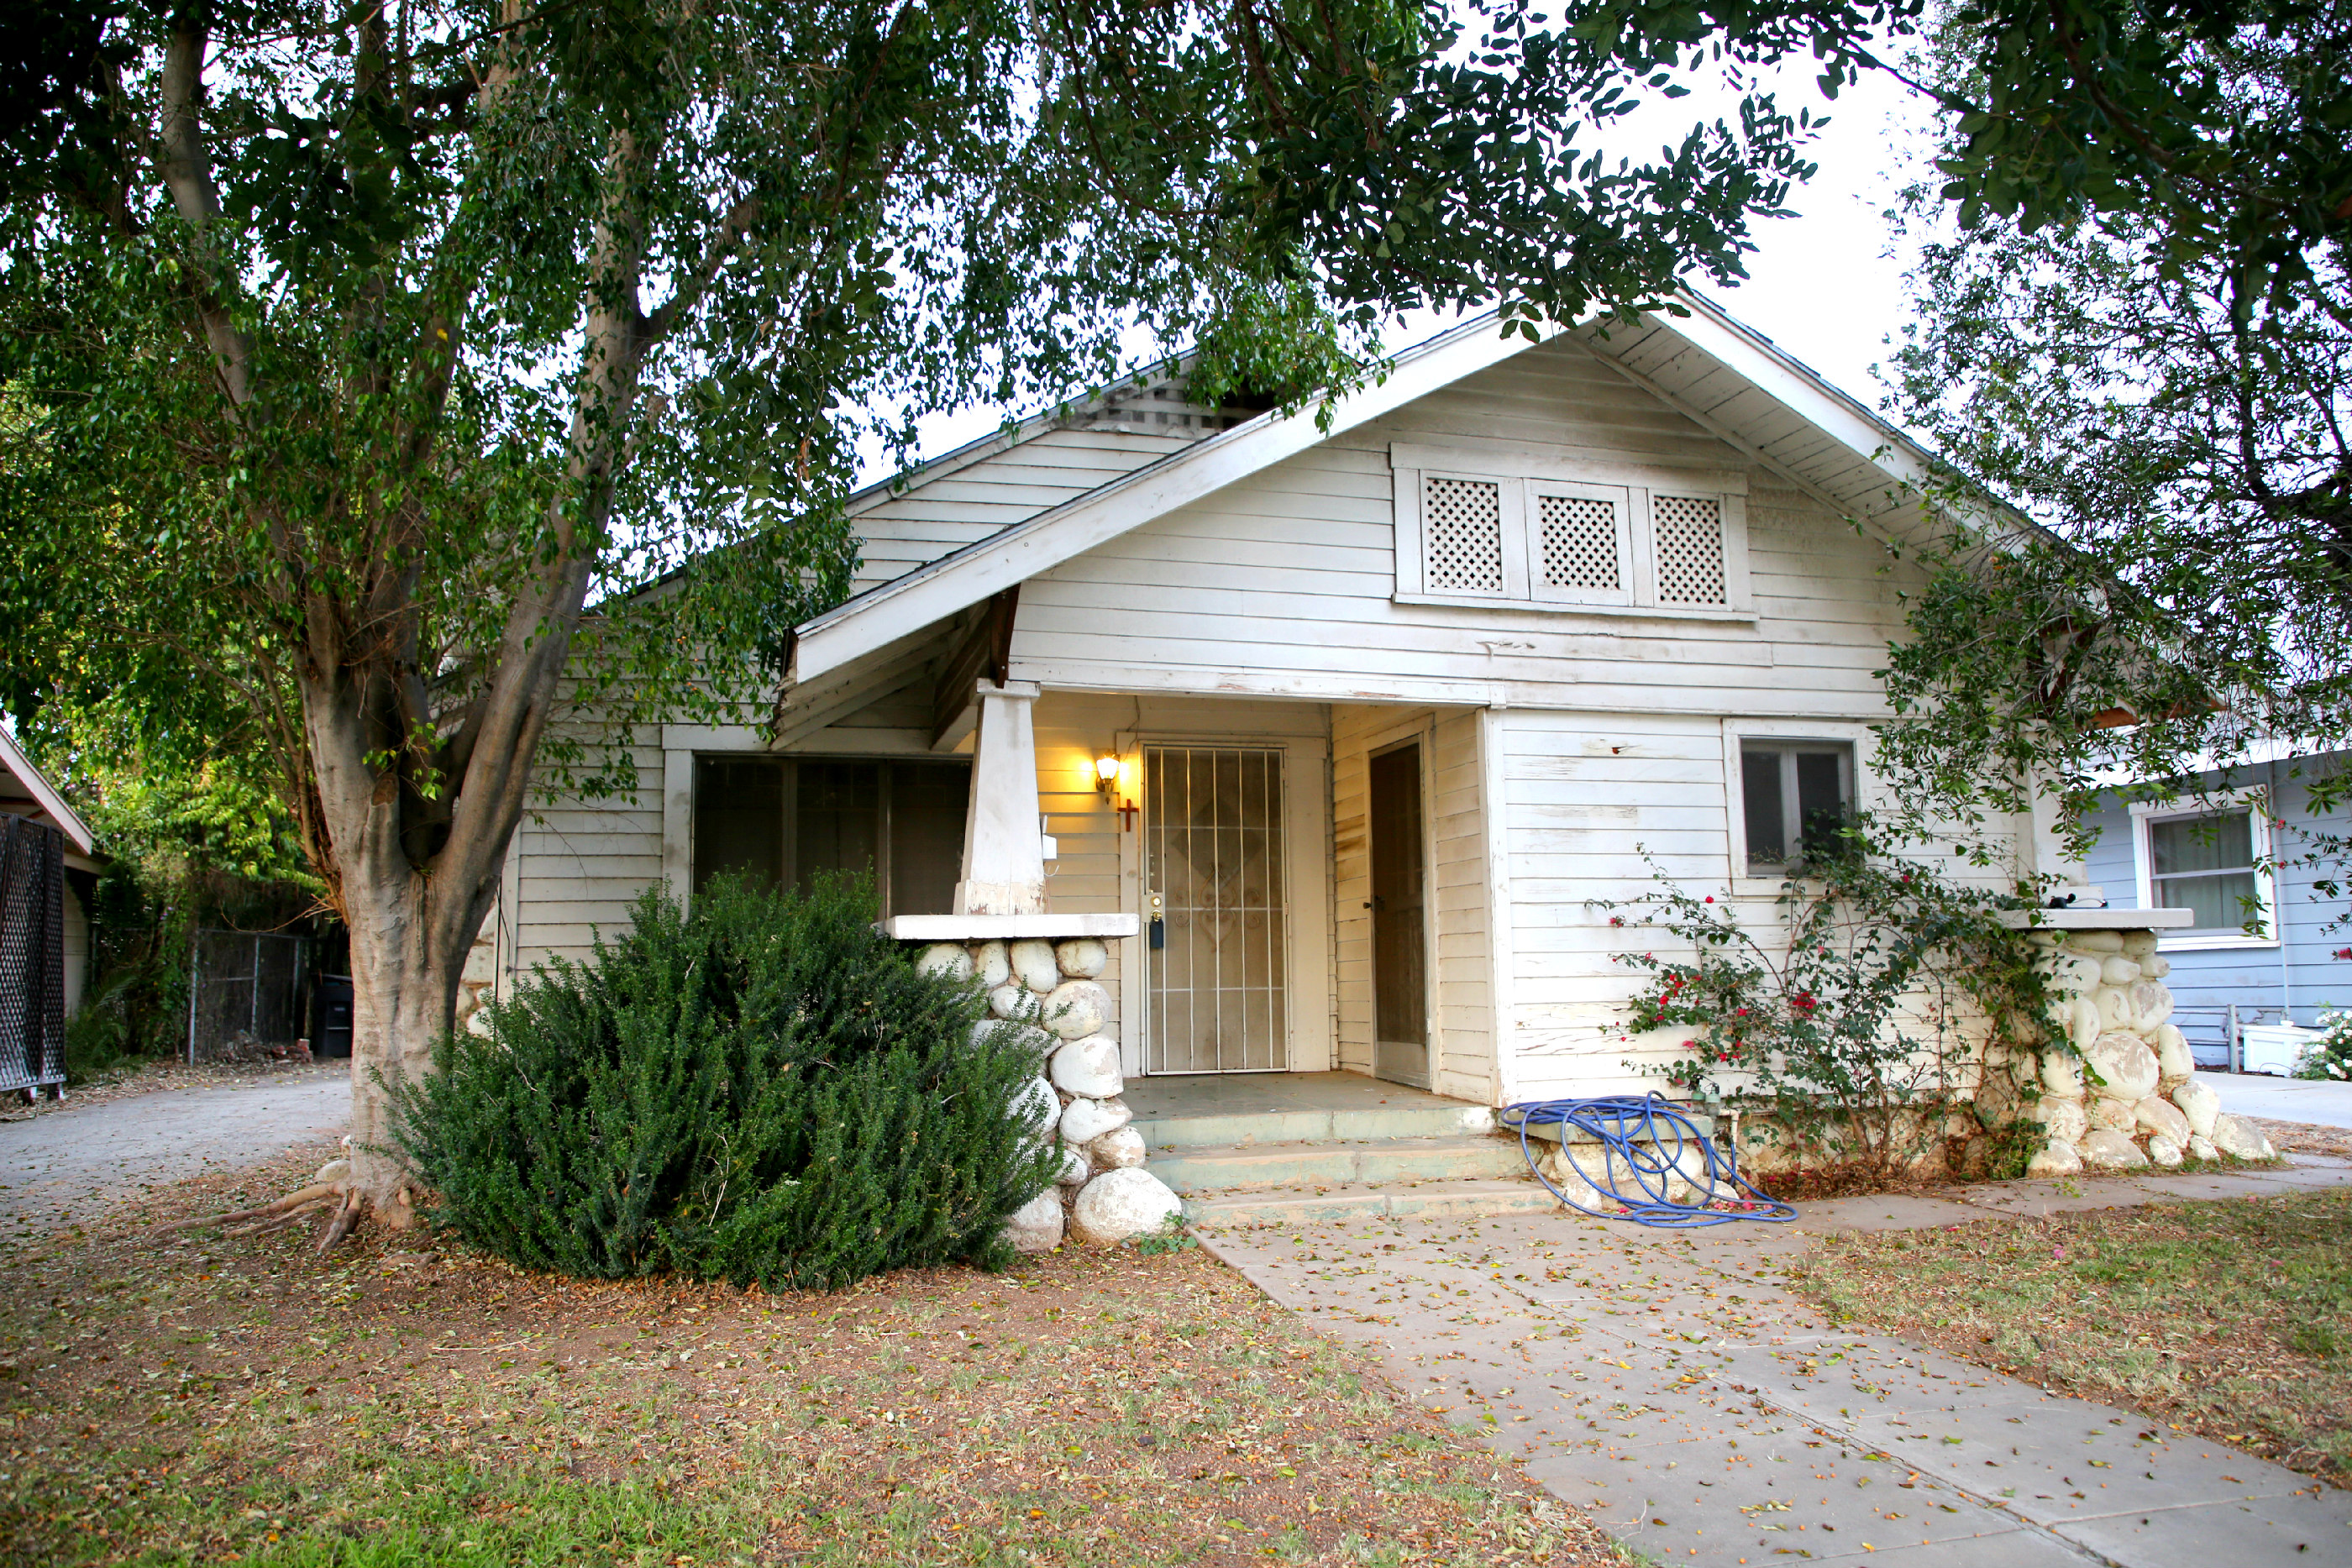 4375 Highland Place, Riverside CA 92506 listed by THE SISTER TEAM